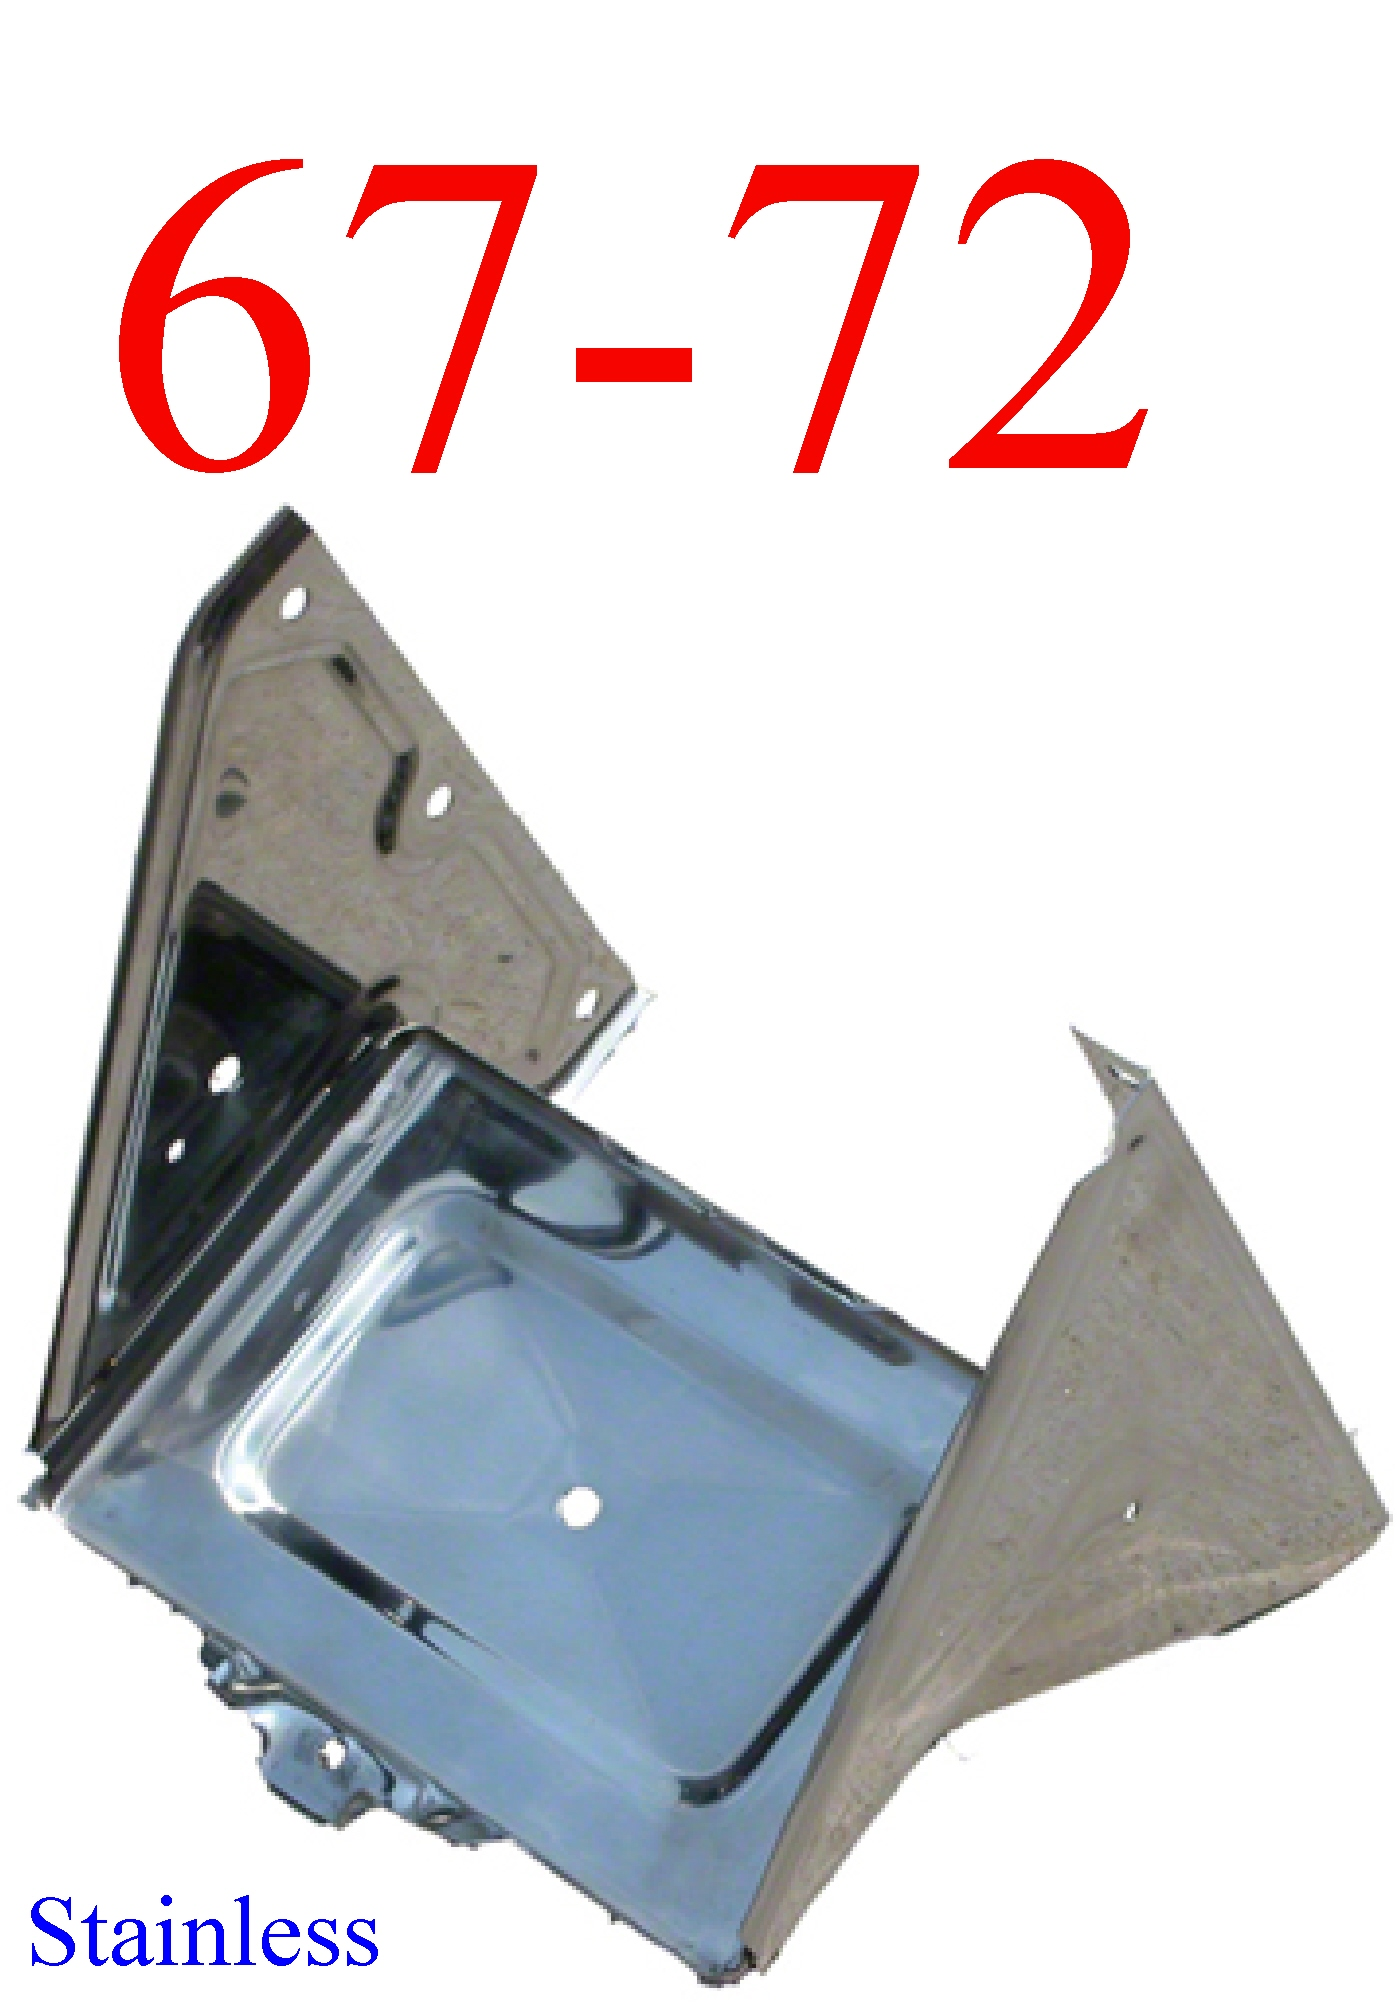 67-72 Stainless Chevy Battery Tray Assembly